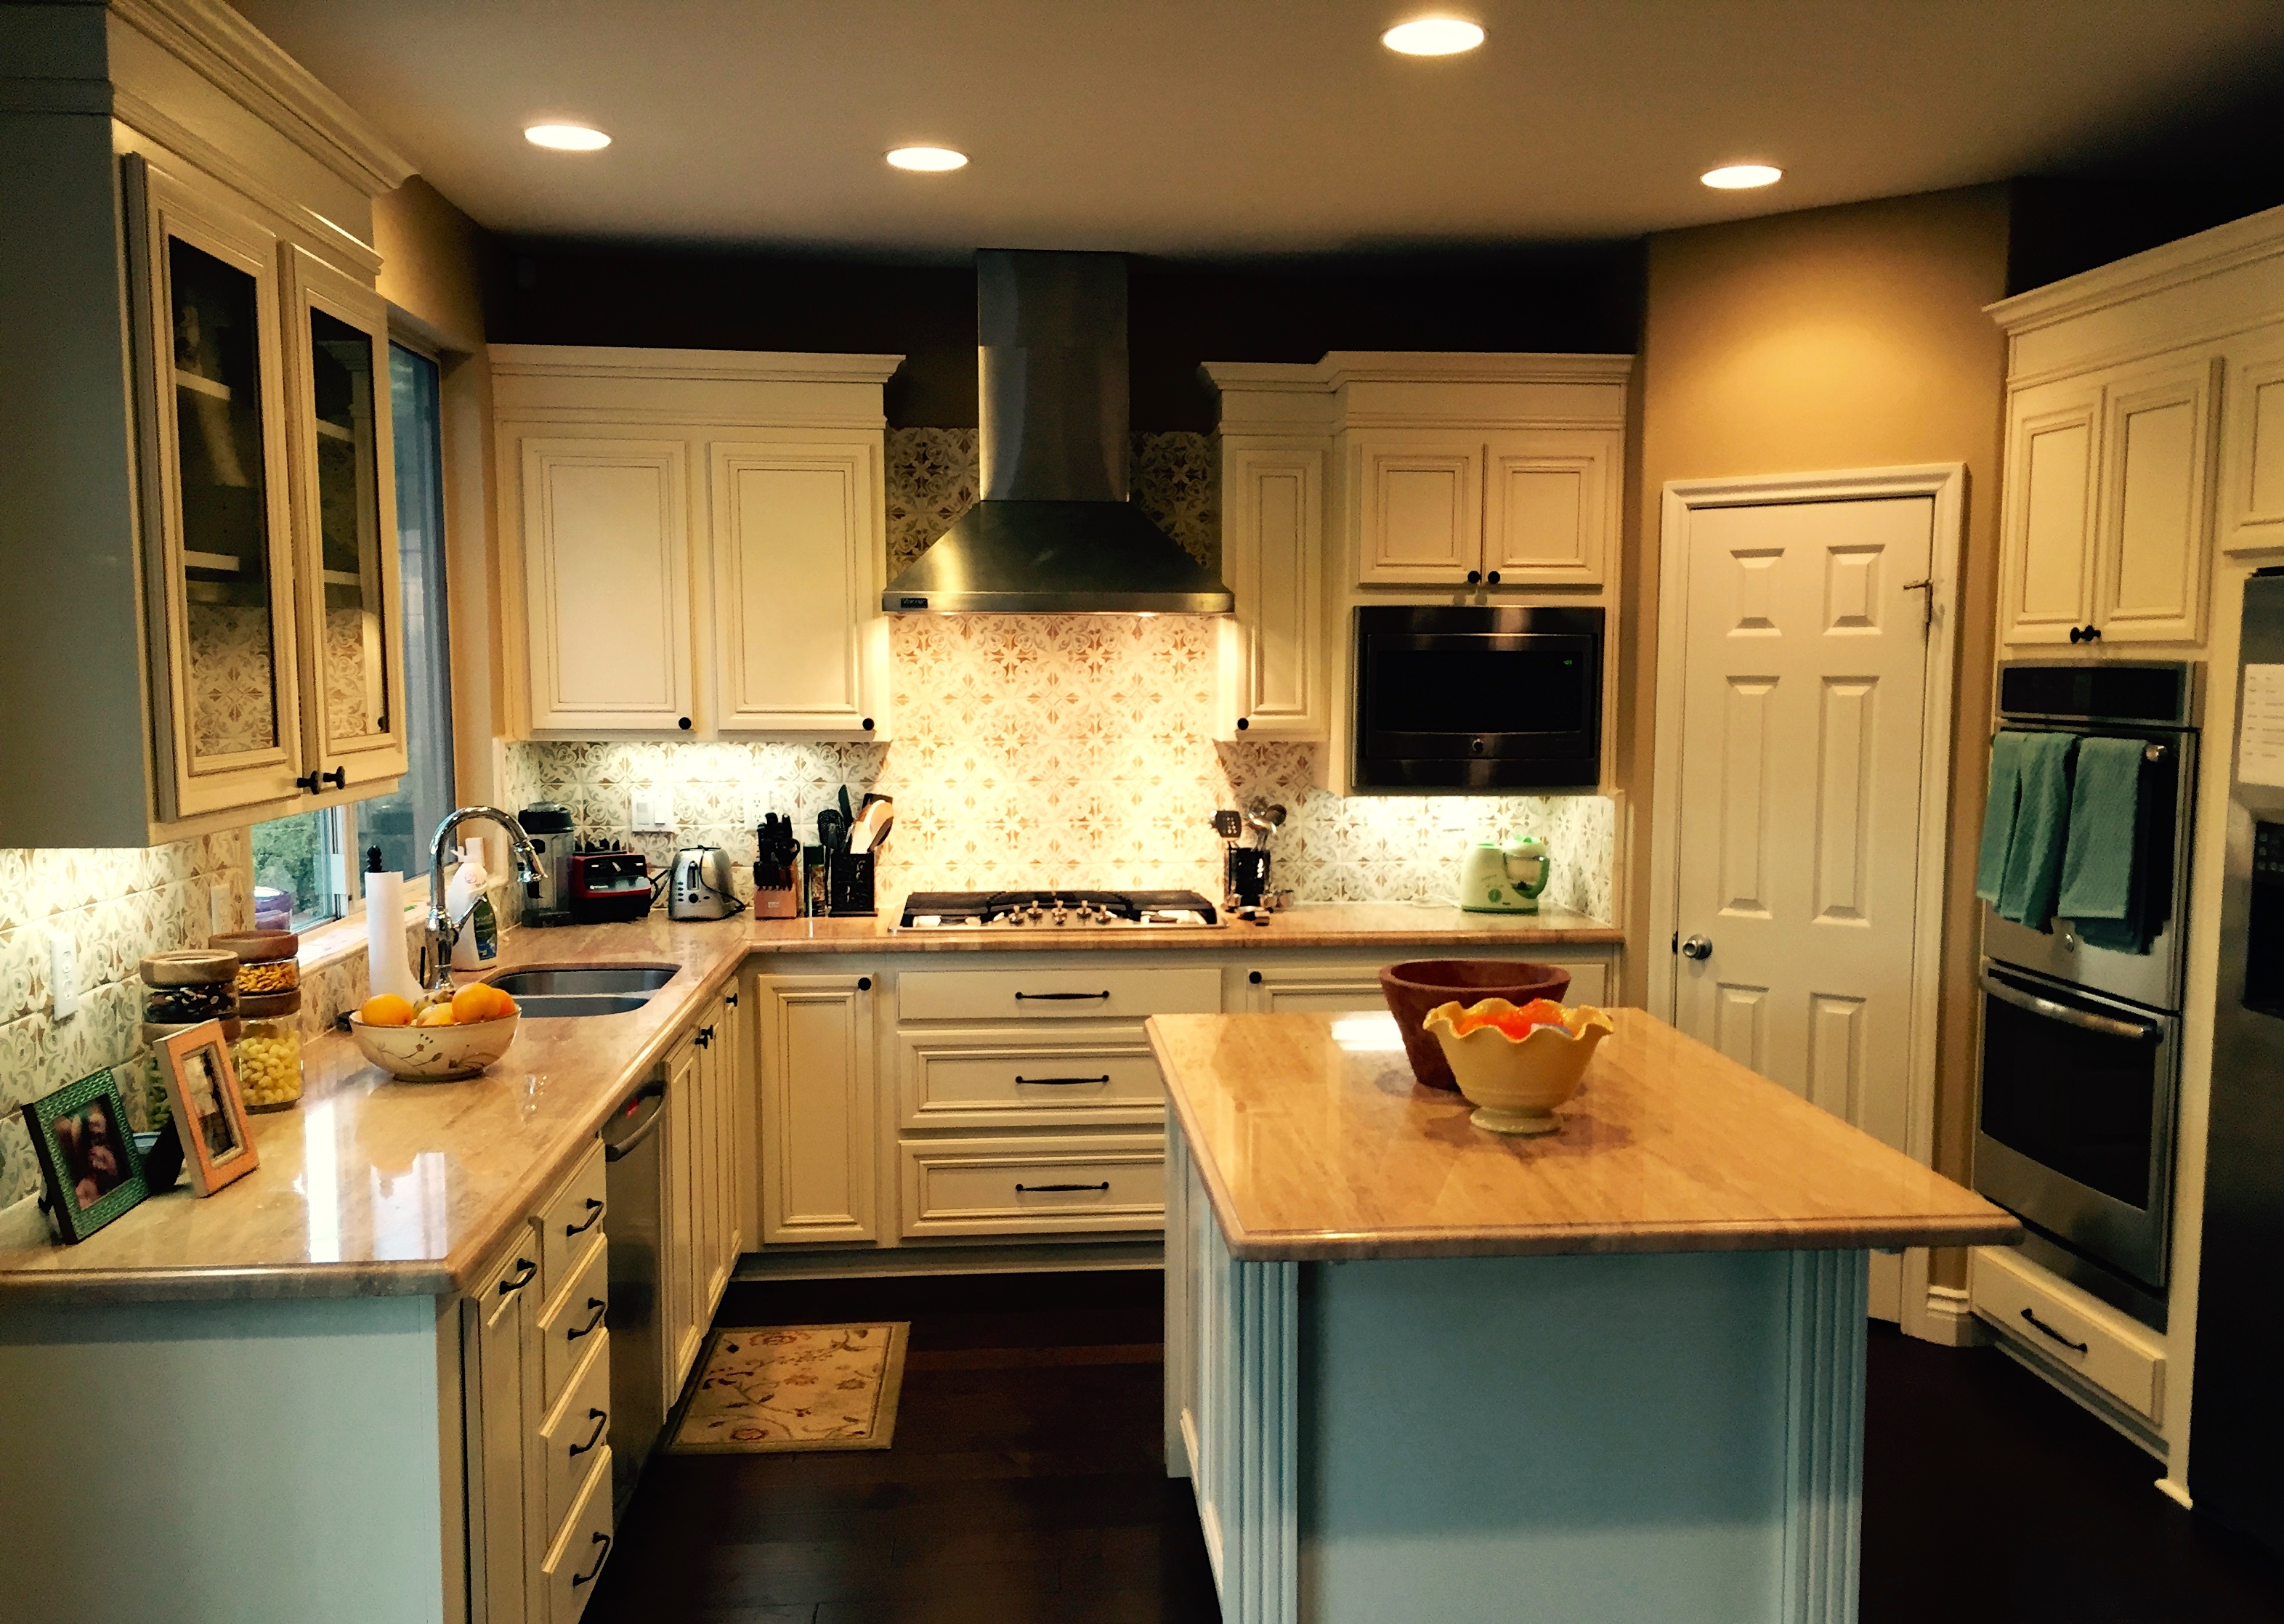 On-Line Kitchen Remodel Planner Makes Design Easier - Inspired Remodels